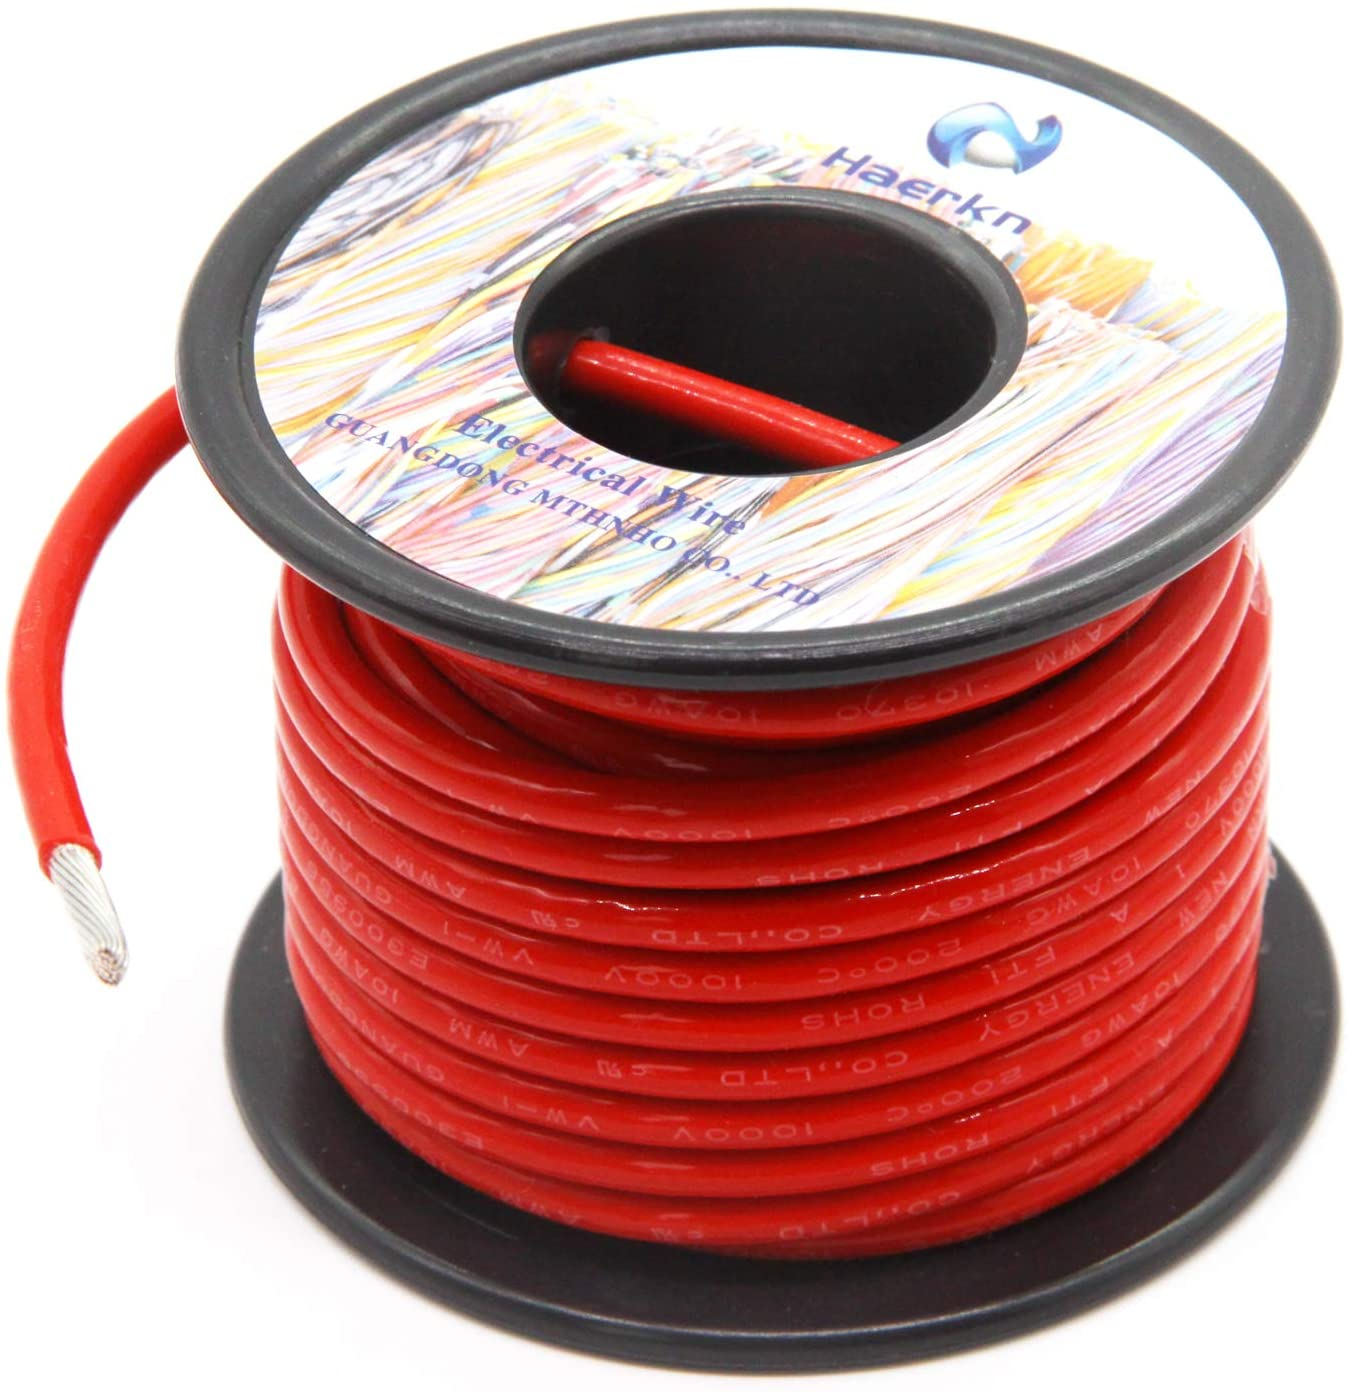 10 Gauge Electrical wire Marine Grade Primary wire Cable High Voltage 1000V Automotive high temperature wire battery cable 10 AWG Stranded of Tinned copper Hook up wire Hard wires 25FT Red Roll